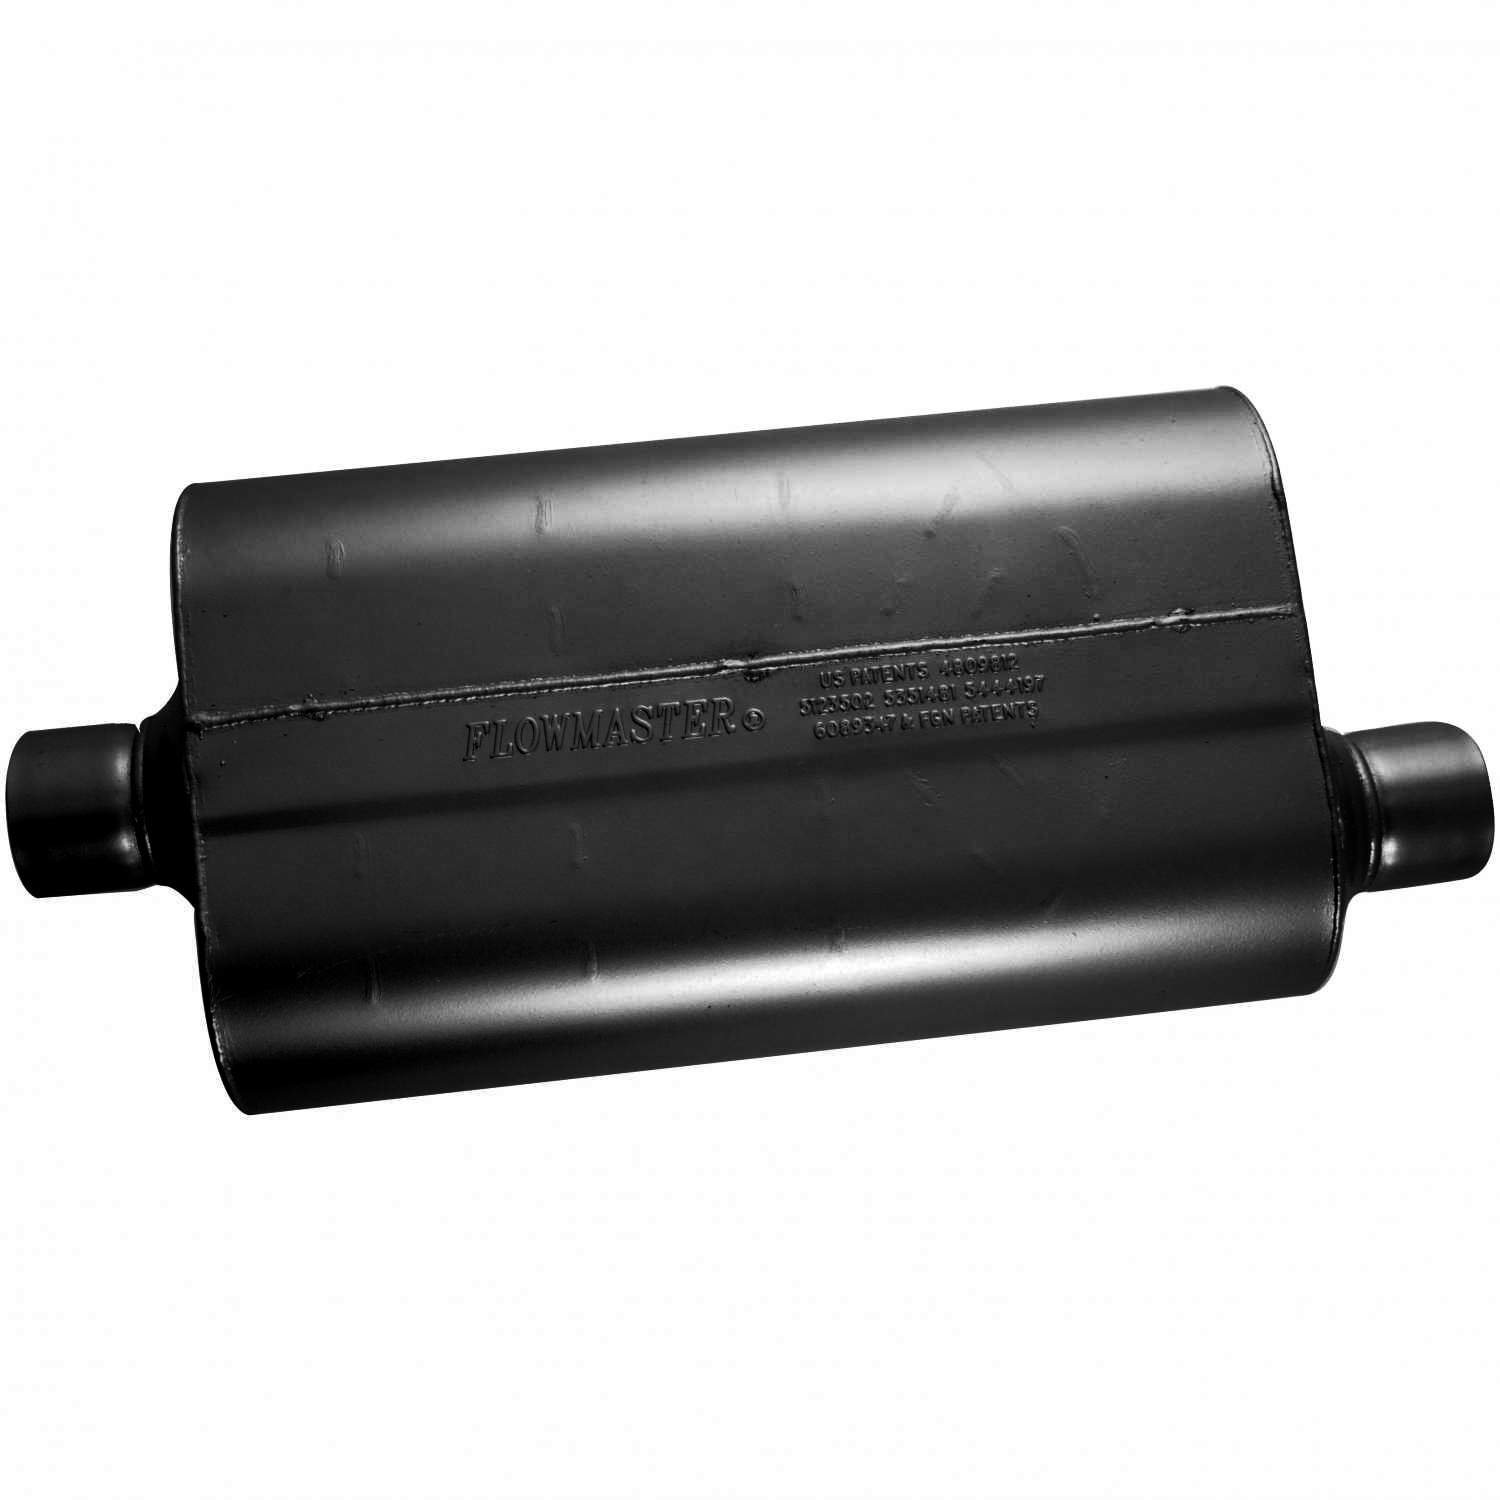 Flowmaster 52557 Super 50 Muffler - 2.50 Center IN / 2.50 Offset OUT - Moderate Sound by Flowmaster (Image #4)